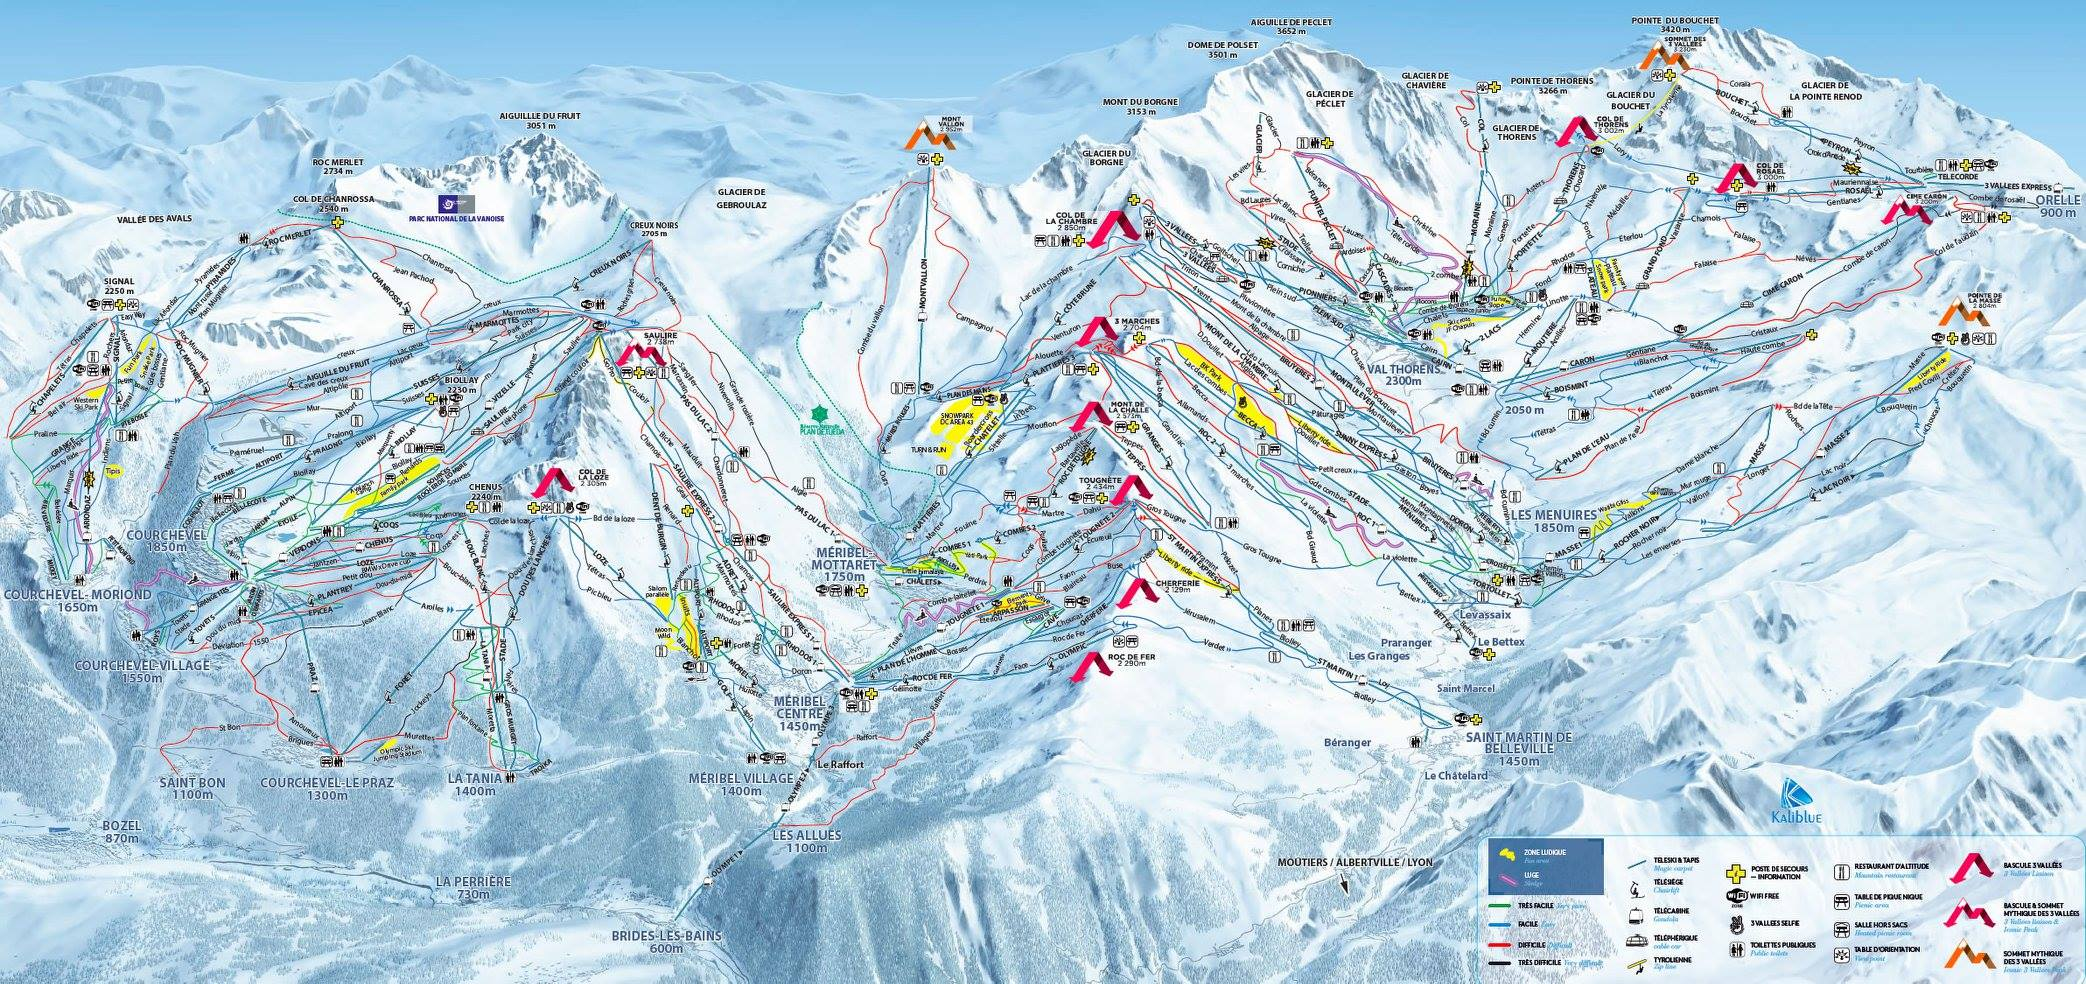 Maps Piste Maps of Courchevel SeeCourchevelcom